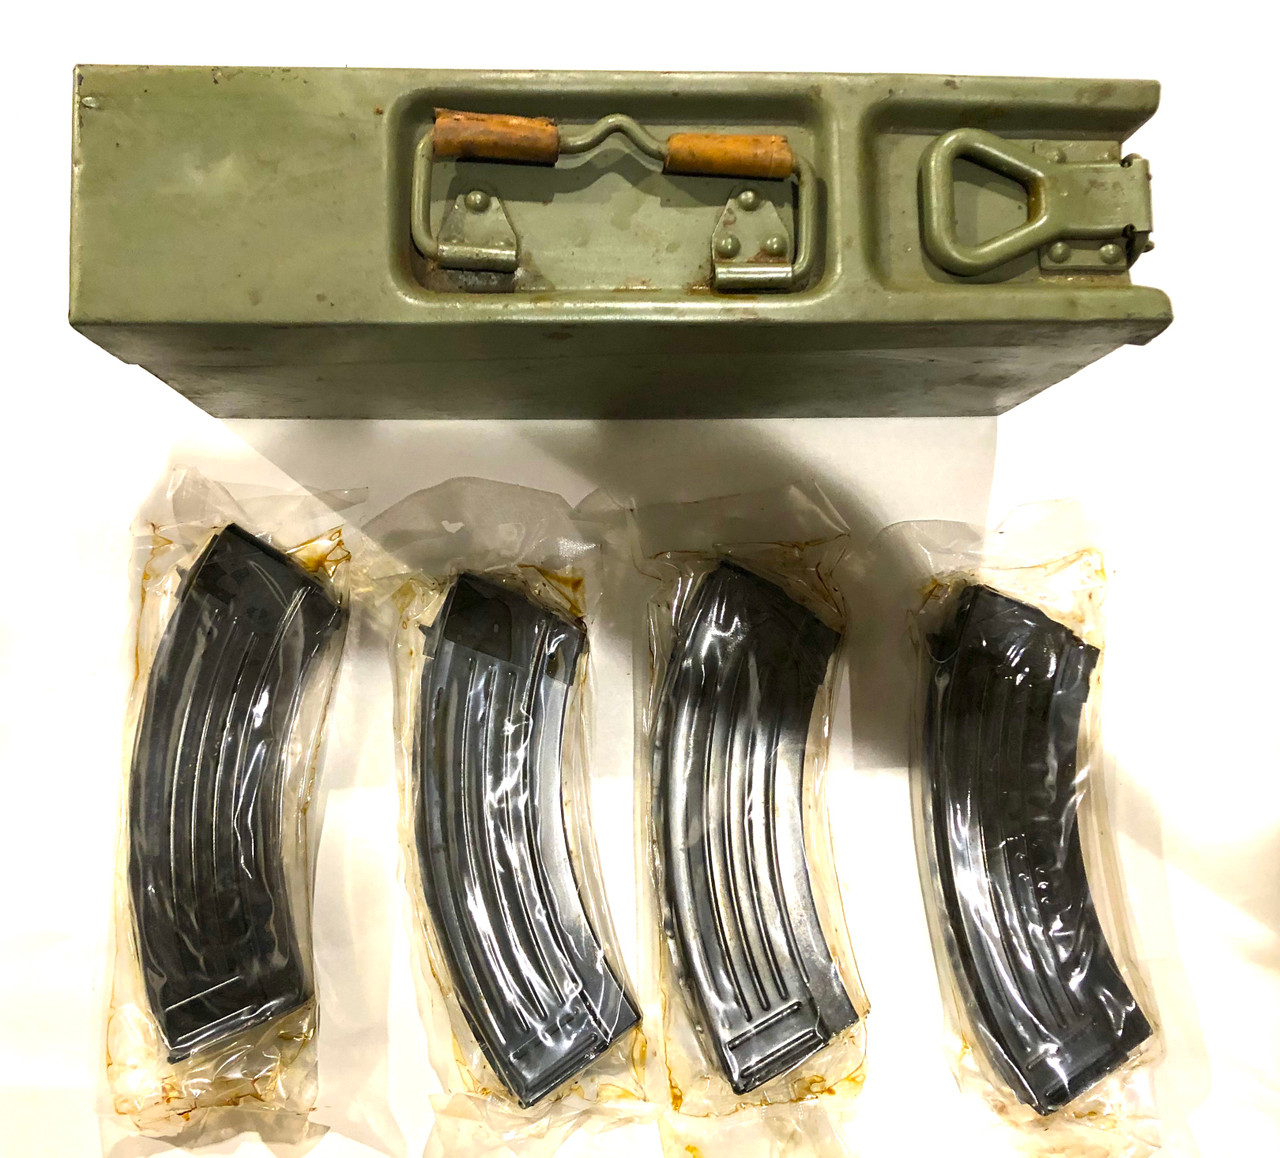 4 x CROATIAN AK-47 7.62x39 Mags with Yugoslav 8mm Ammo Can